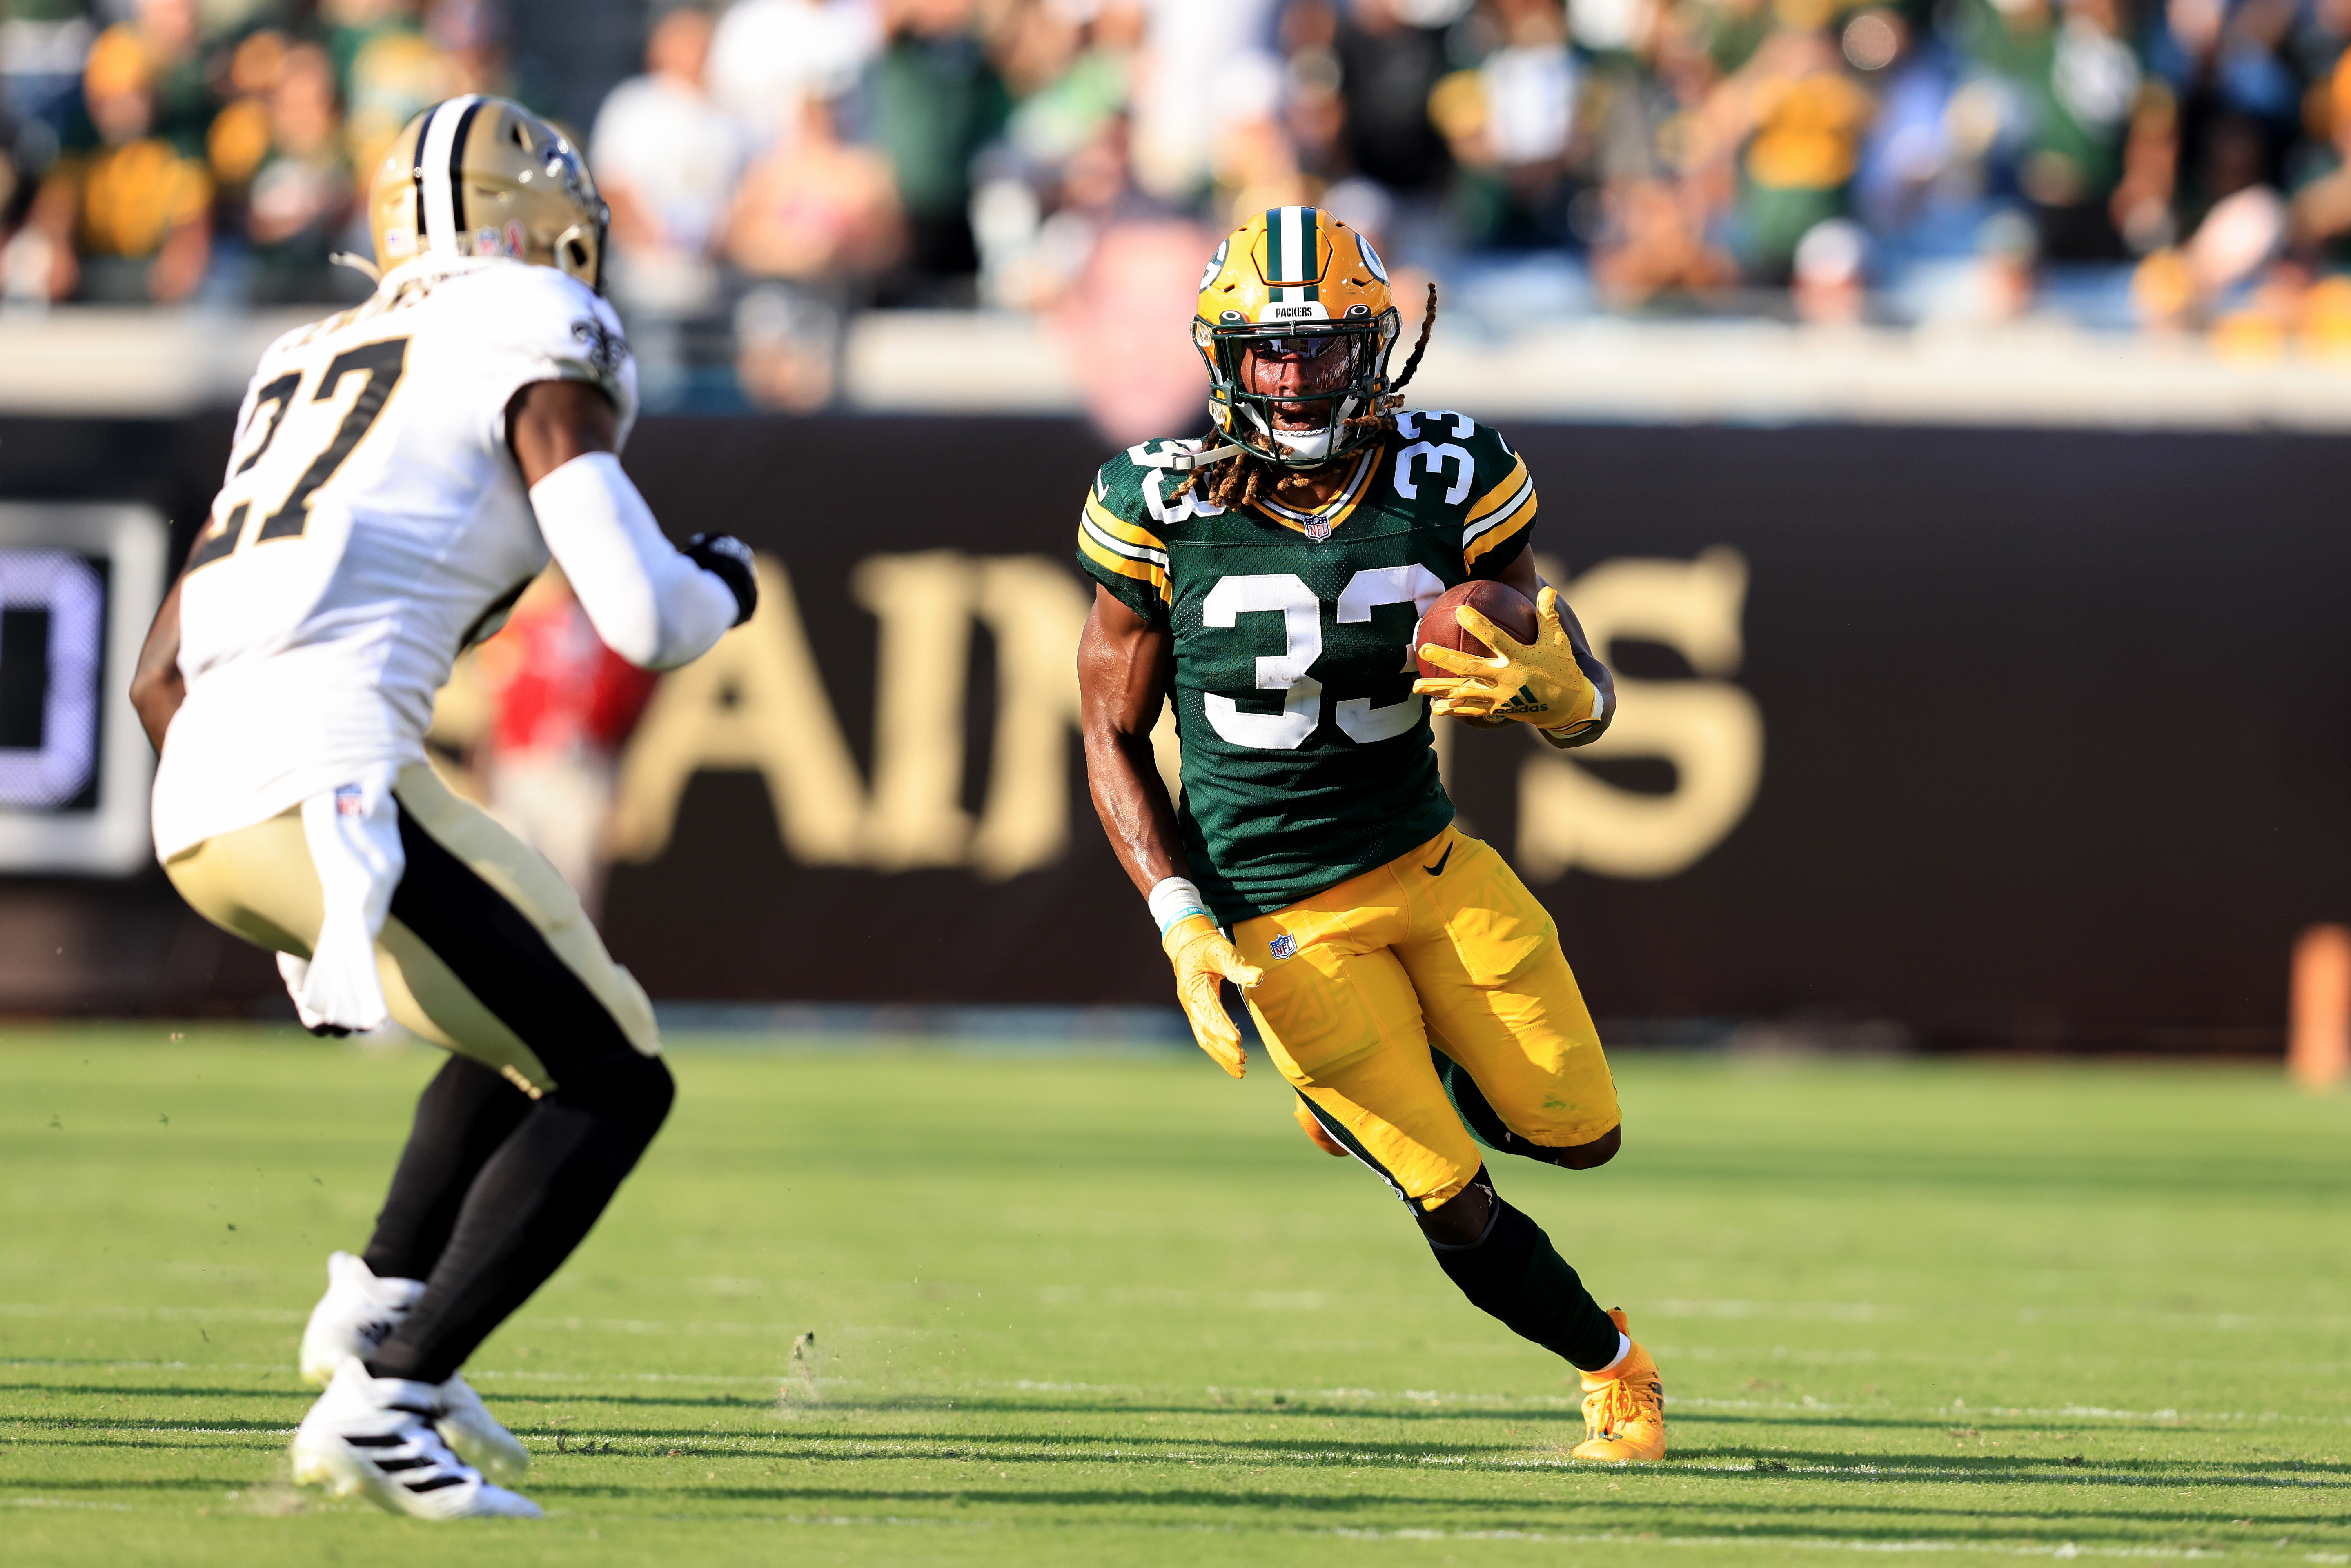 Aaron Jones #33 of the Green Bay Packers rushes for yardage during the game against the New Orleans Saints at TIAA Bank Field on September 12, 2021 in Jacksonville, Florida.